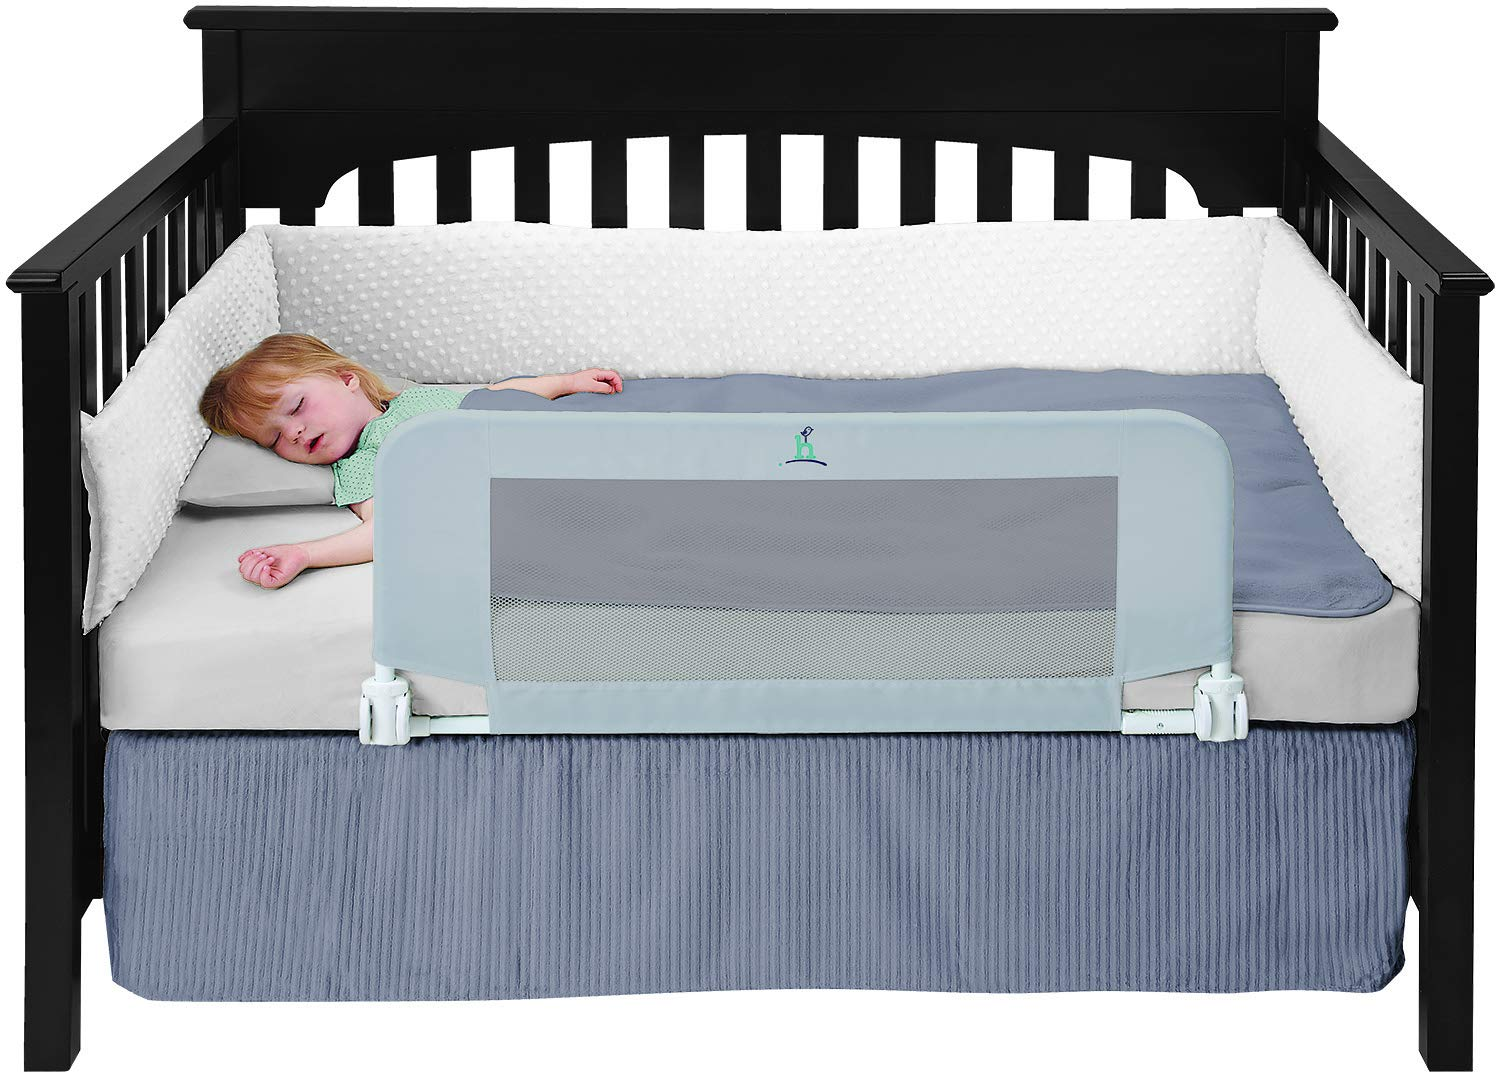 45521edee90 hiccapop Convertible Crib Toddler Bed Rail Guard with Reinforced Anchor  Safety product image